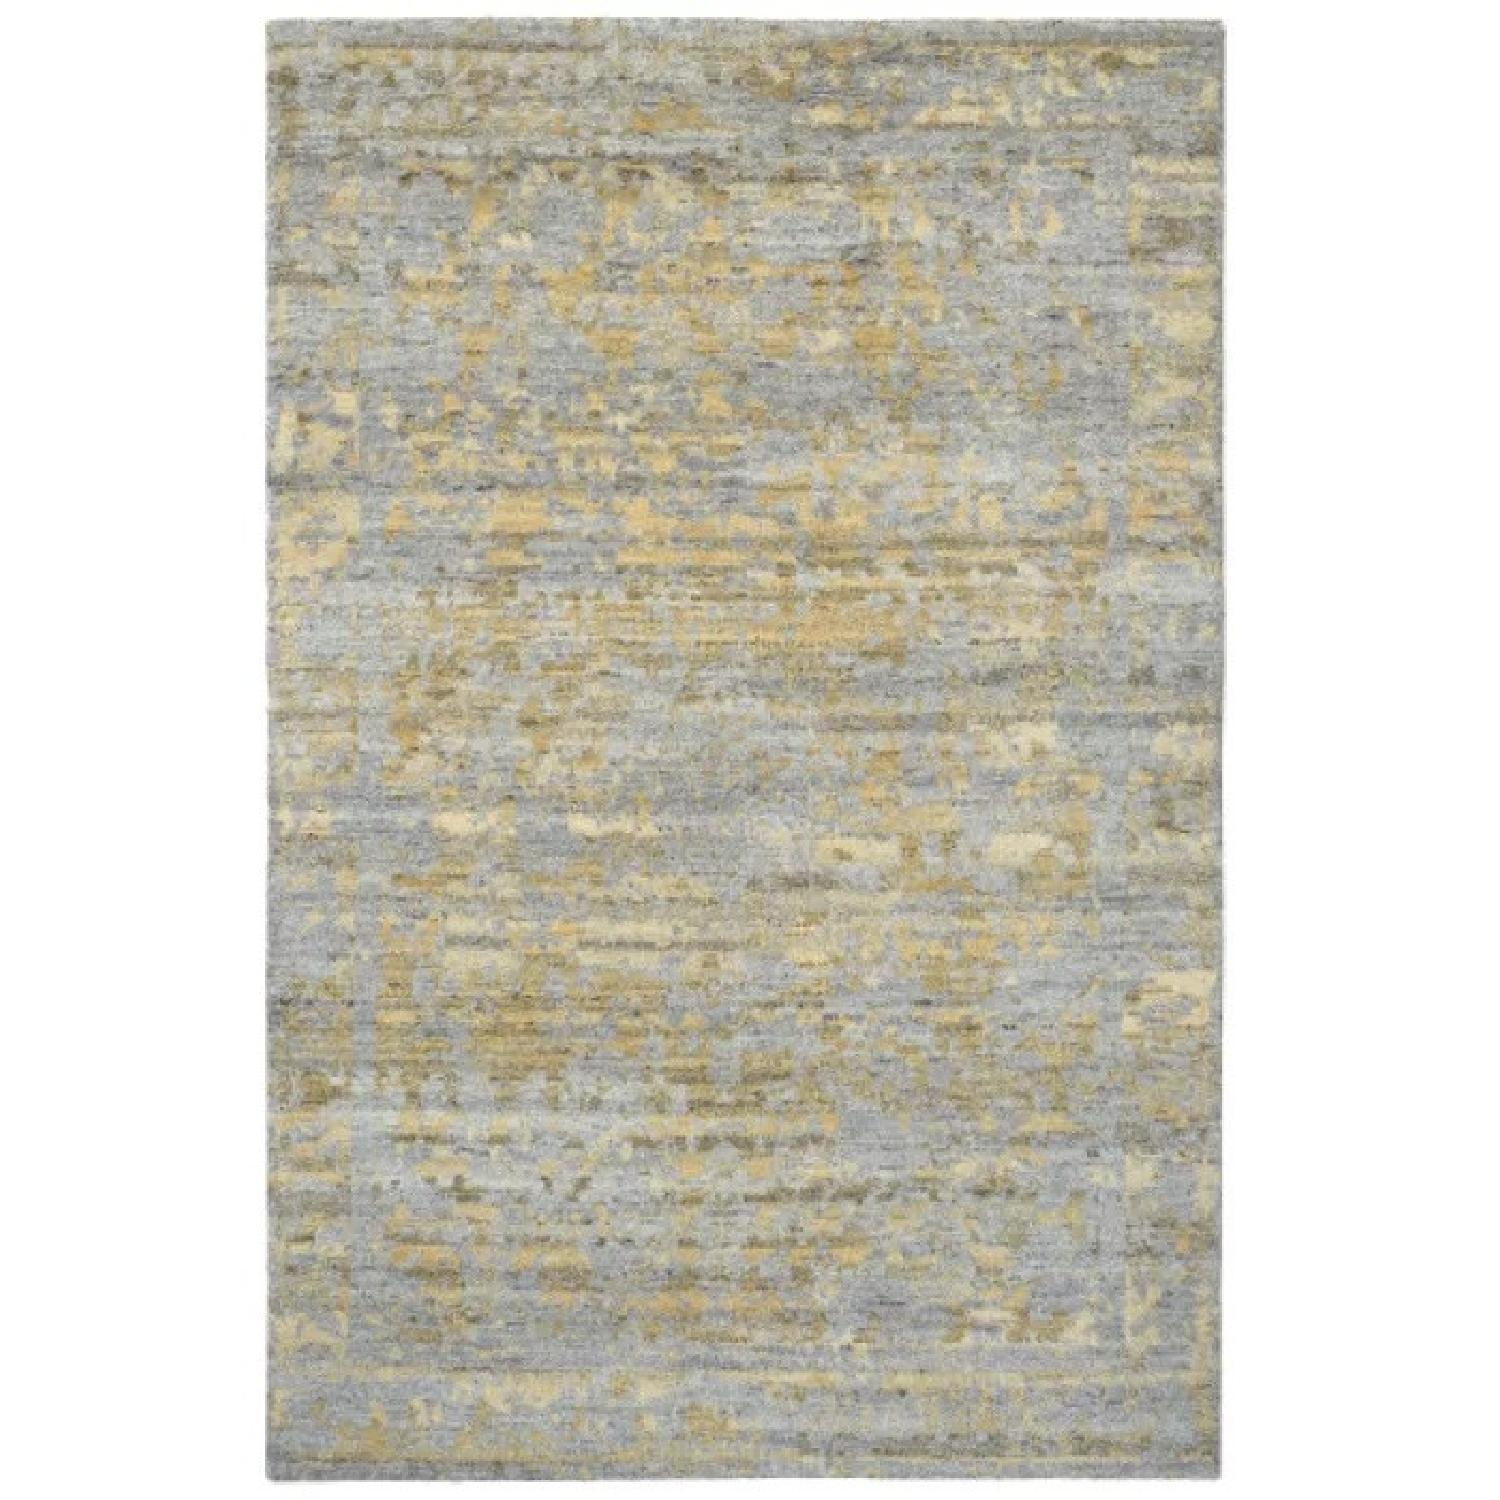 Company C Jasper Hand-Knotted Wool Gold/Gray Area Rug - image-0